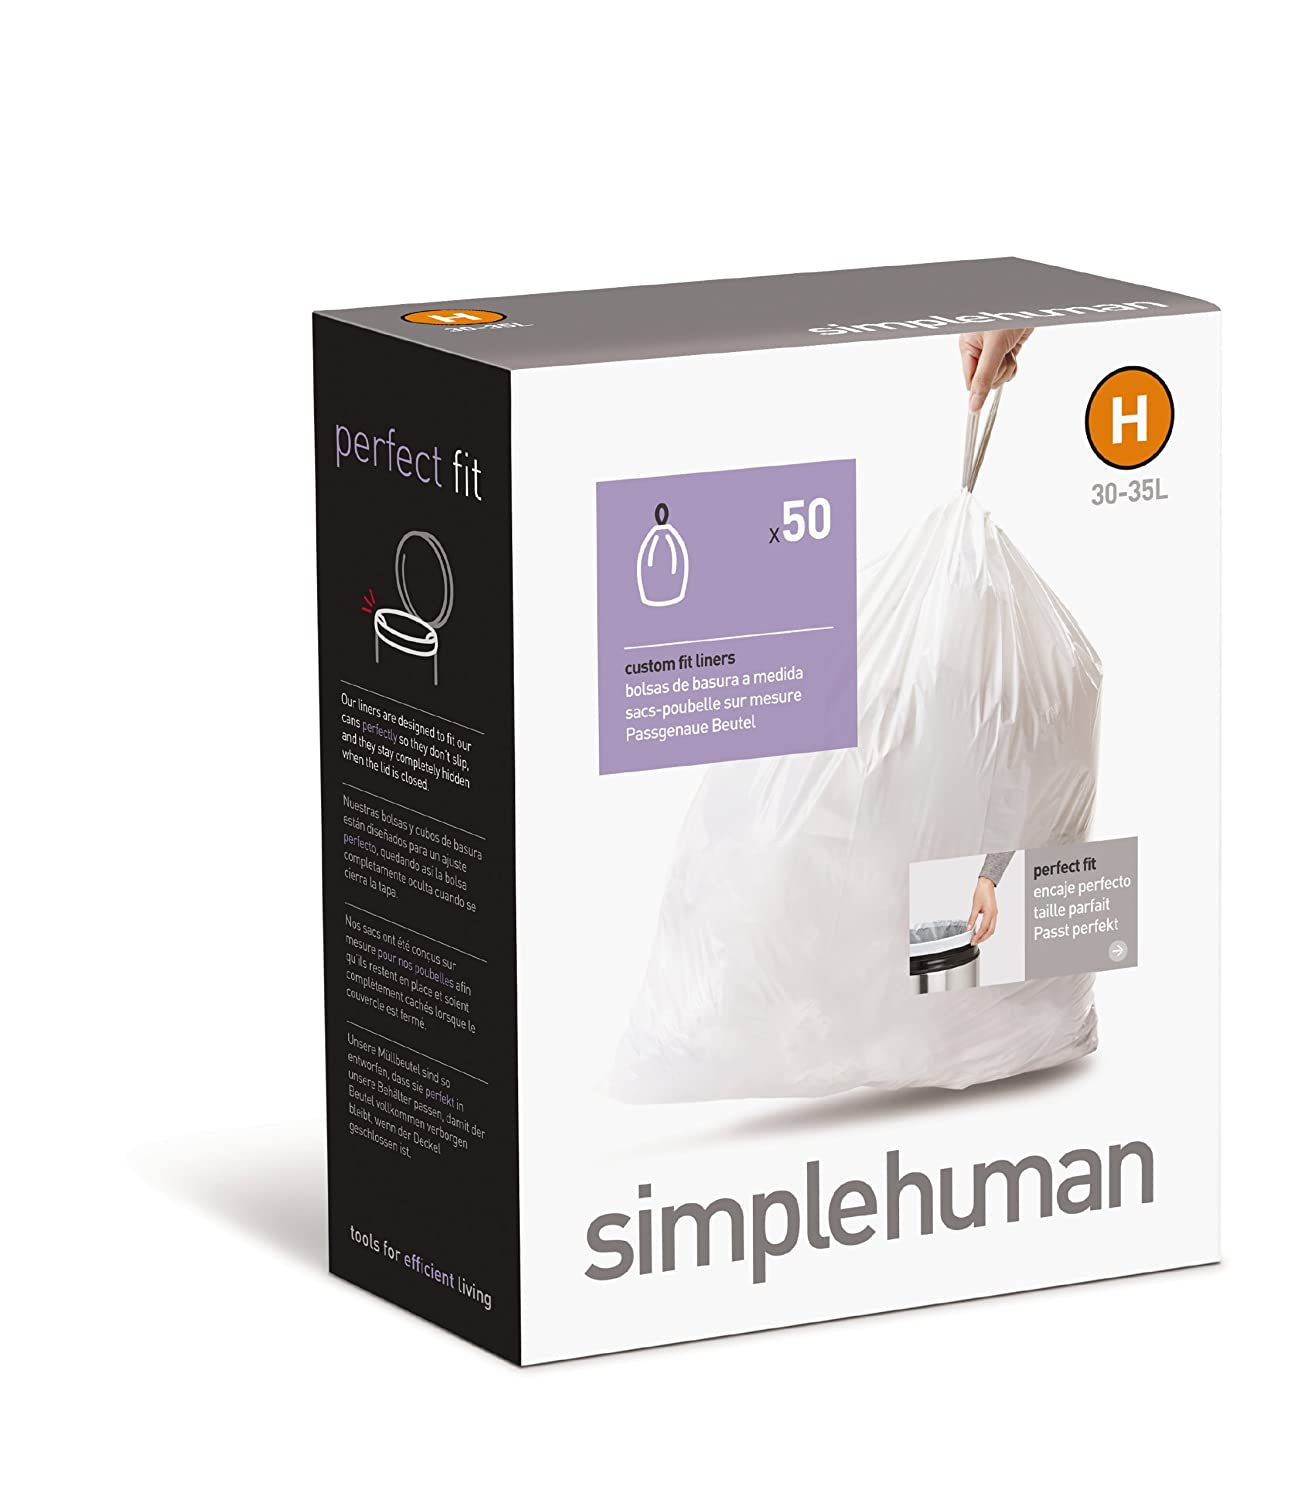 simplehuman Custom Fit Trash Can Liner H, 30-35 L / 8-9 Gal, 50-Count Box